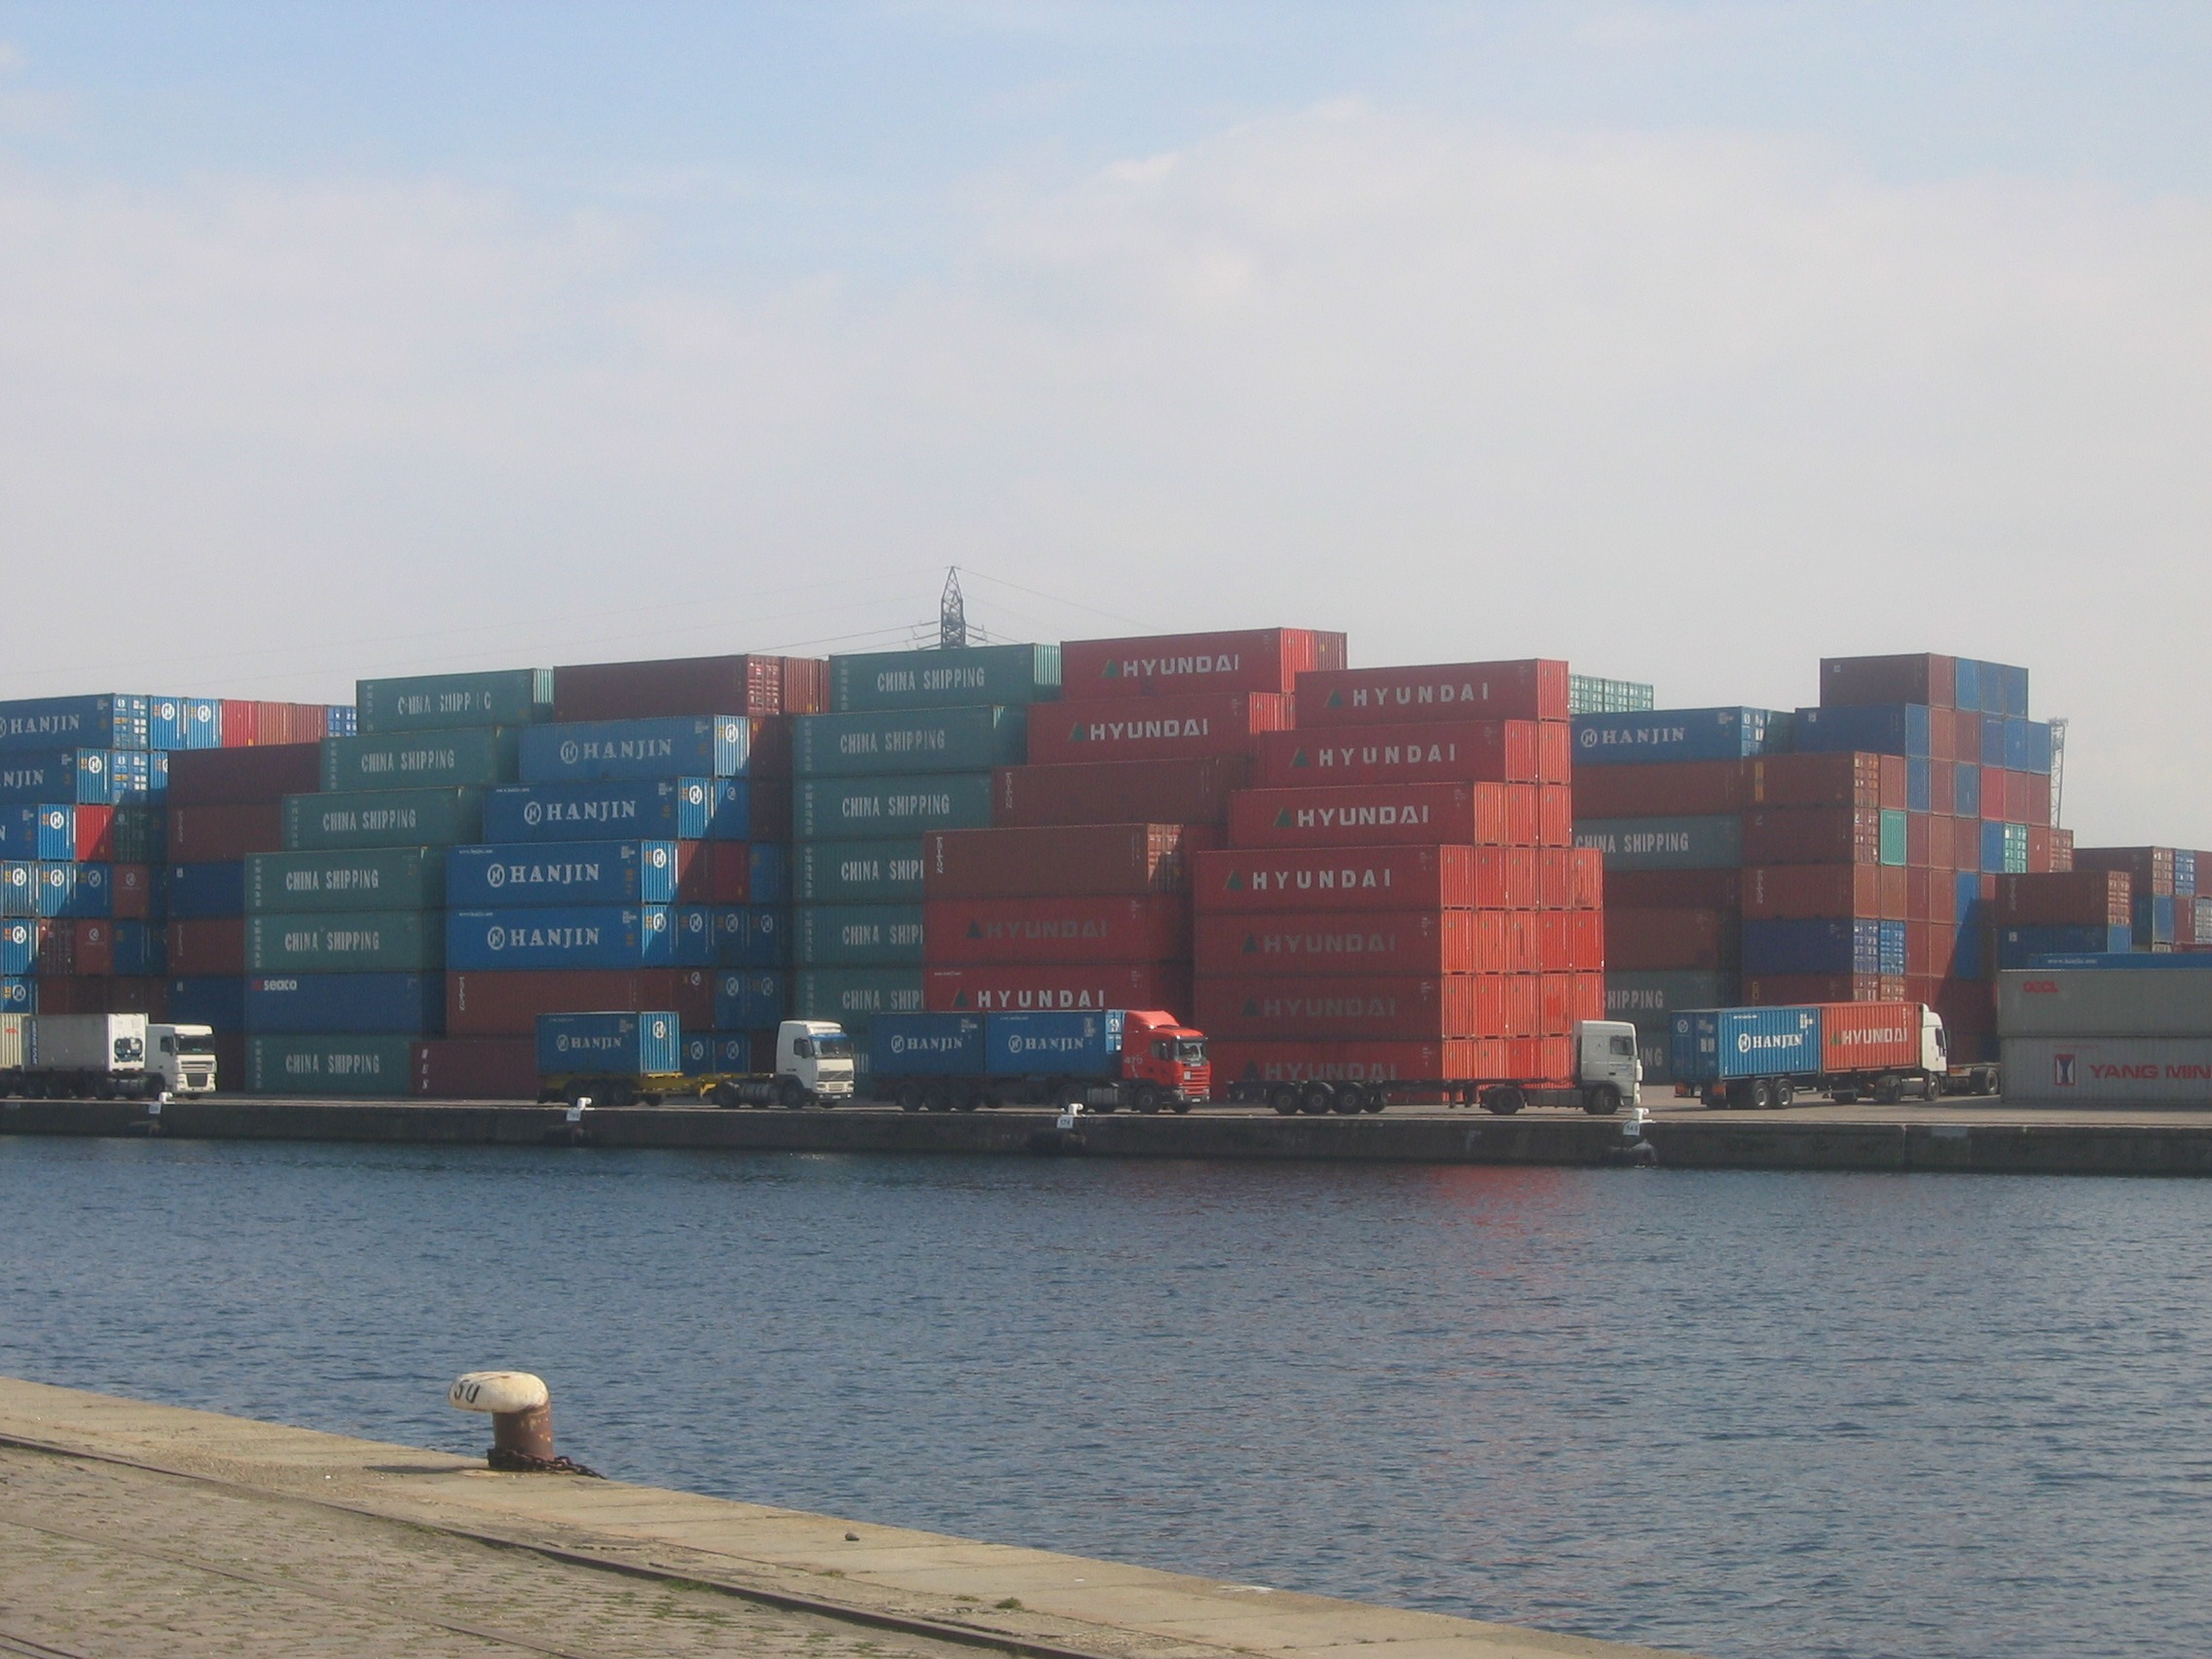 Portsmouth To Le Havre Ferry >> Major Ports Of The World: Port Of Le Havre, France